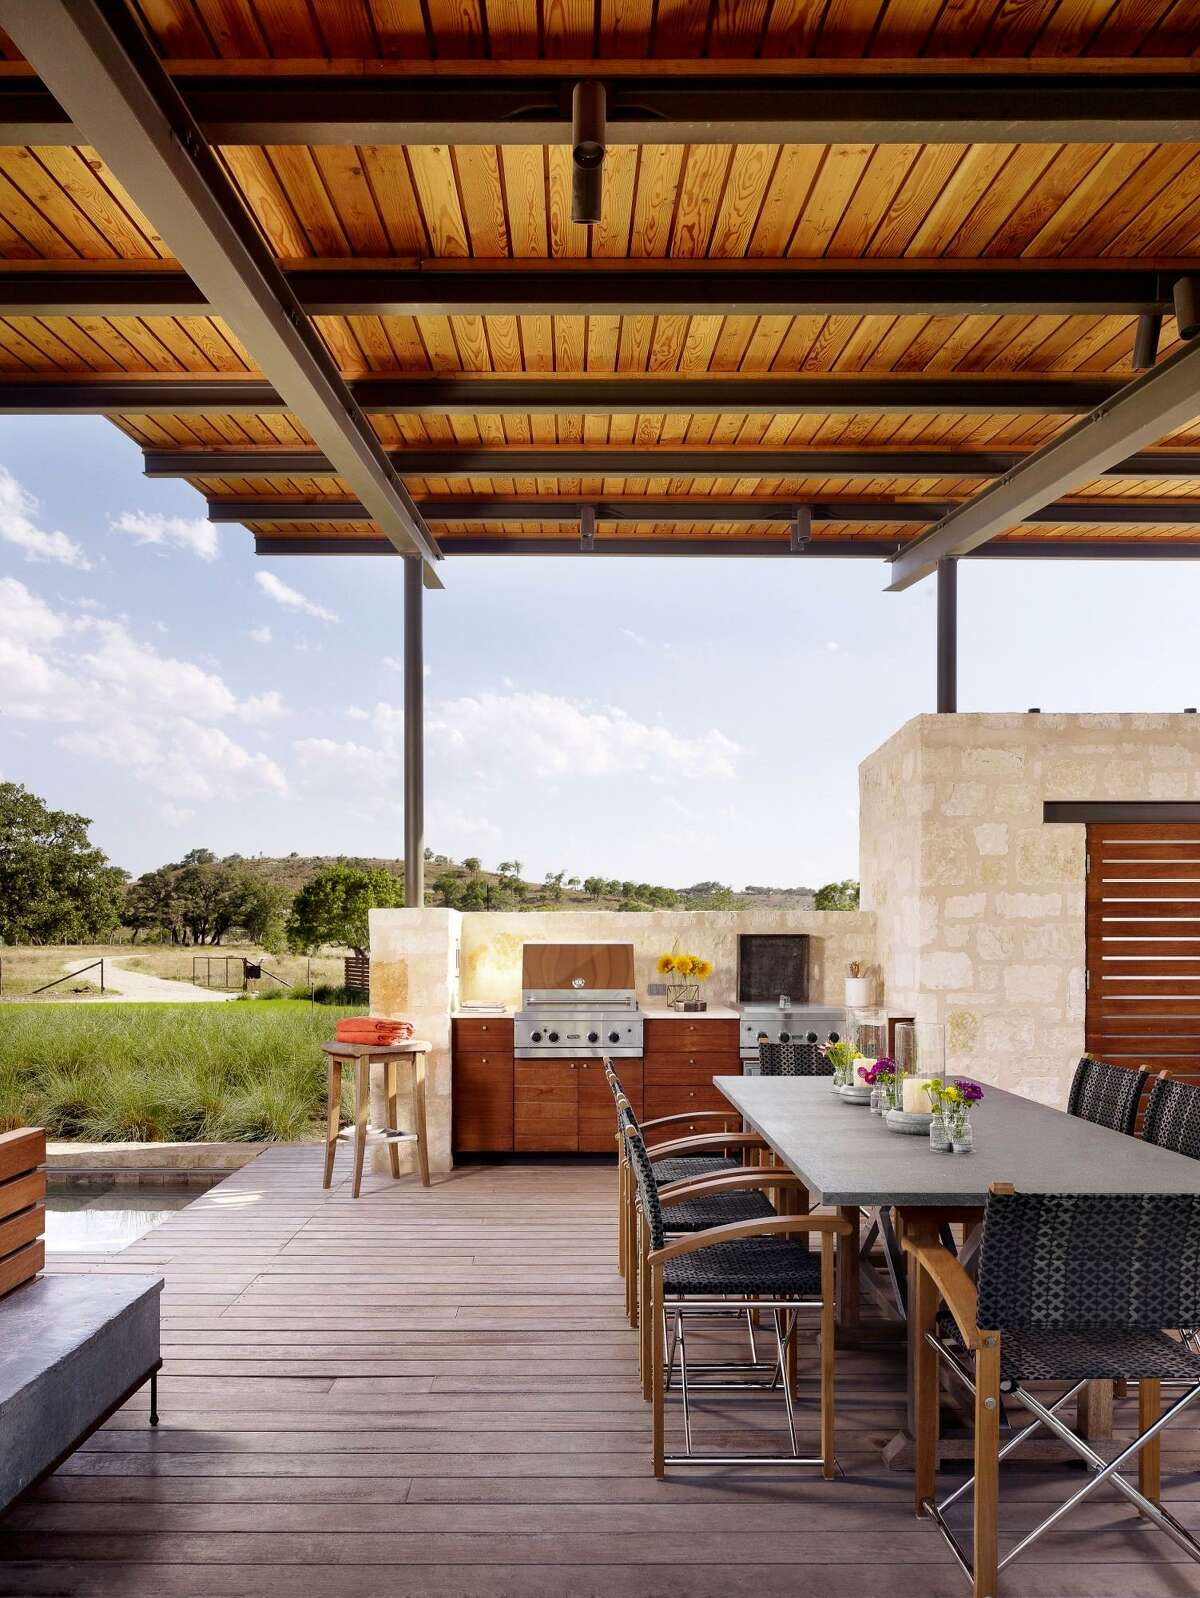 This outdoor pavilion is made of materials that will withstand the weather, including a durable, tropical hardwood called Ipe used in the decking. The standard chlorine pool, is finished with limestone to give it a warm look that plays off the limestone usedfor the half walls.